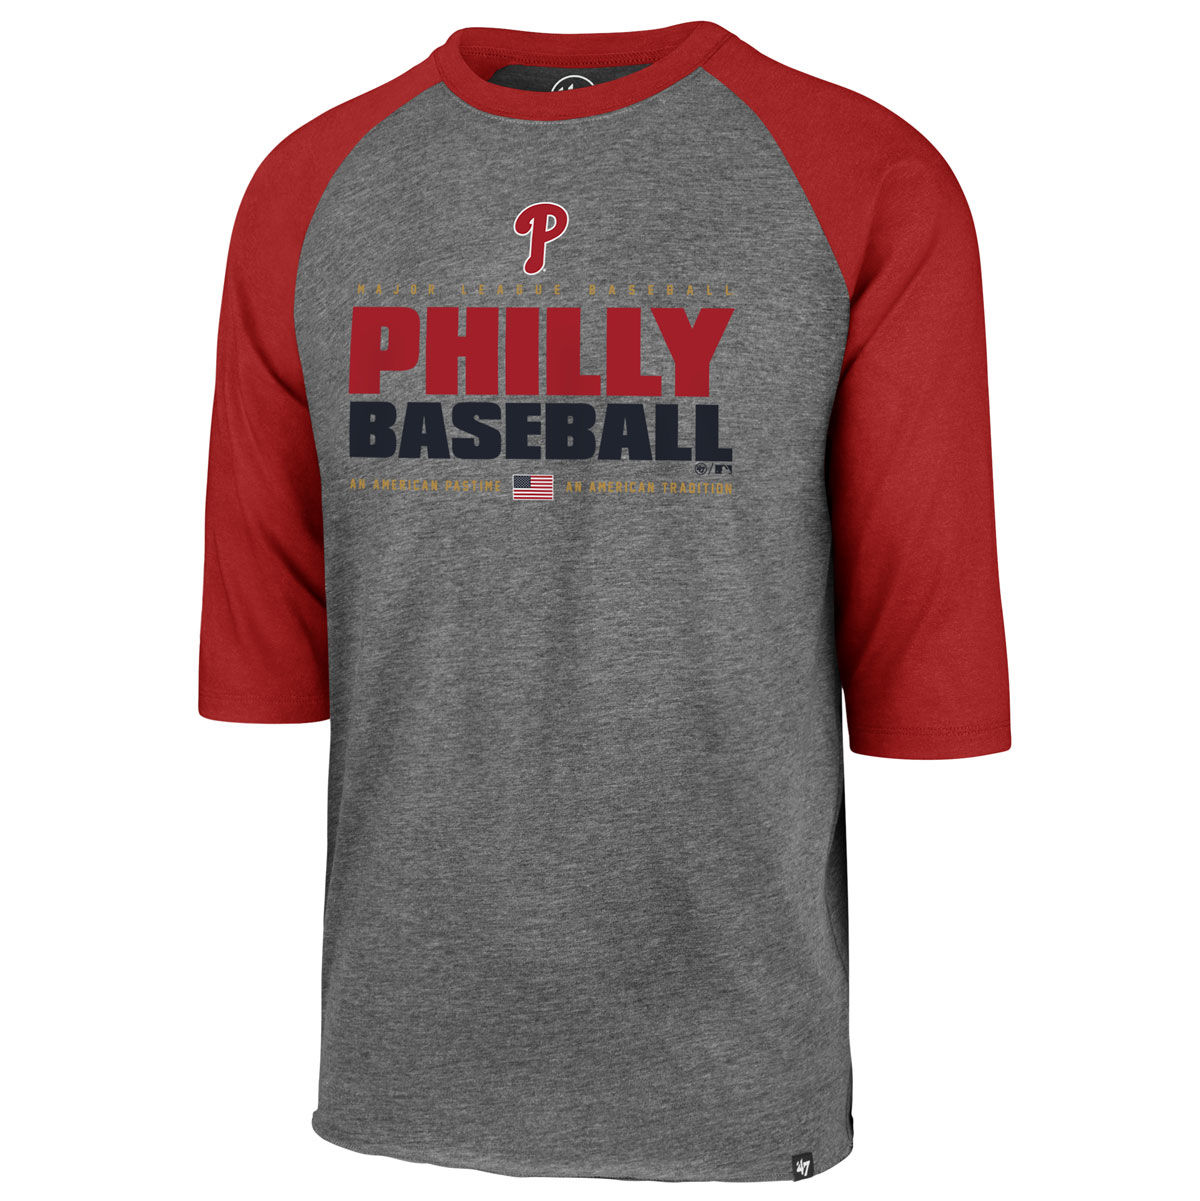 Philadelphia Phillies Adult Raglan T-Shirt